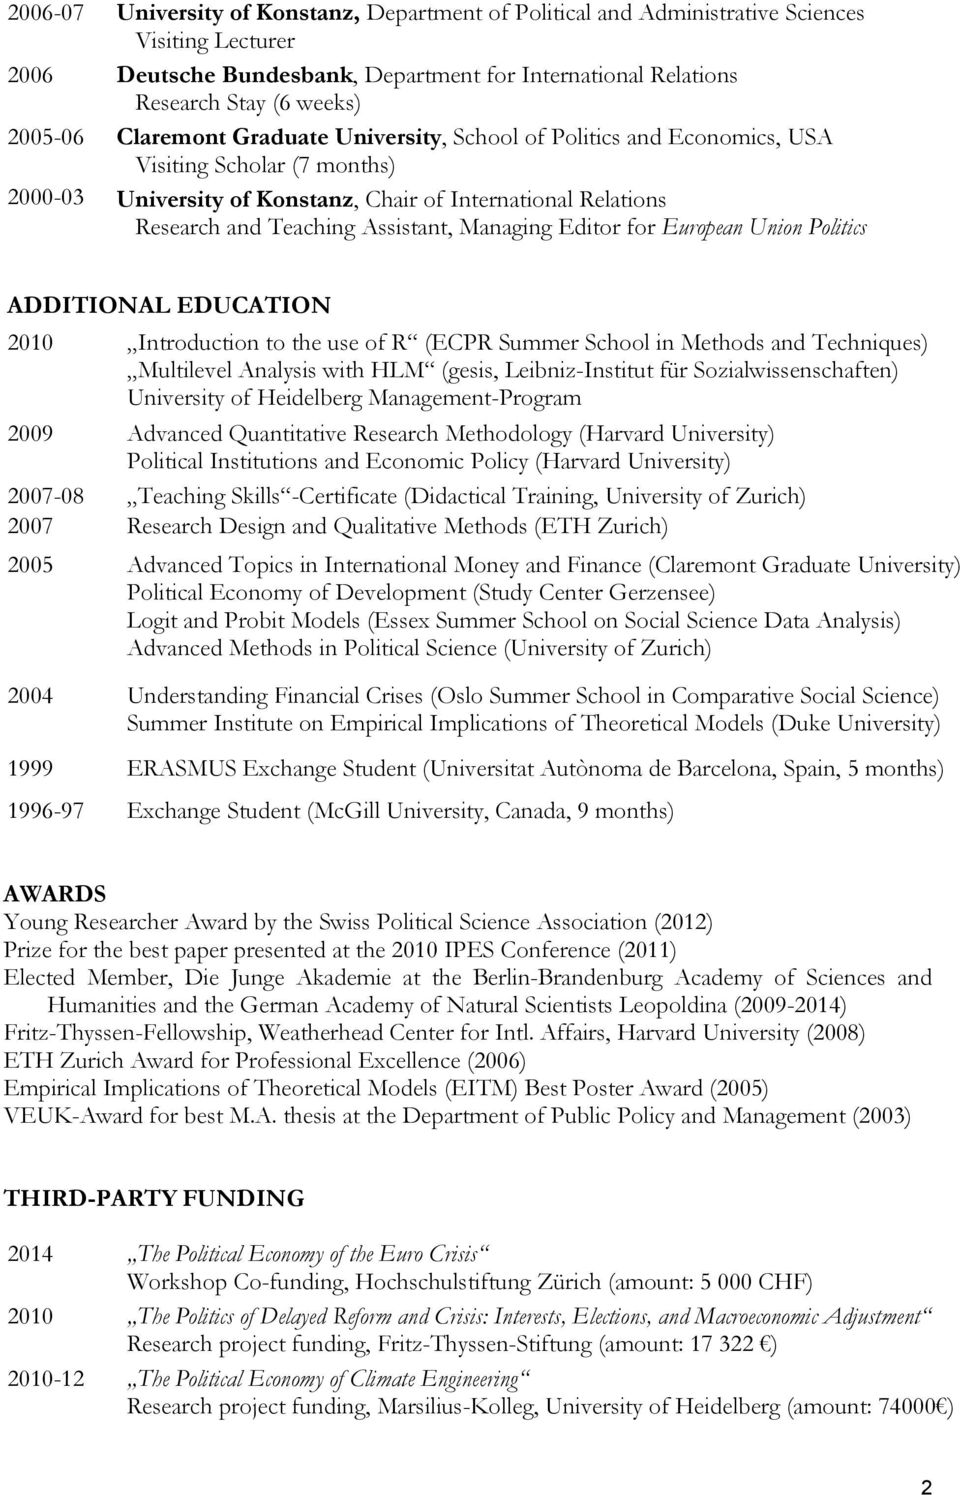 Managing Editor for European Union Politics ADDITIONAL EDUCATION 2010 Introduction to the use of R (ECPR Summer School in Methods and Techniques) Multilevel Analysis with HLM (gesis, Leibniz-Institut